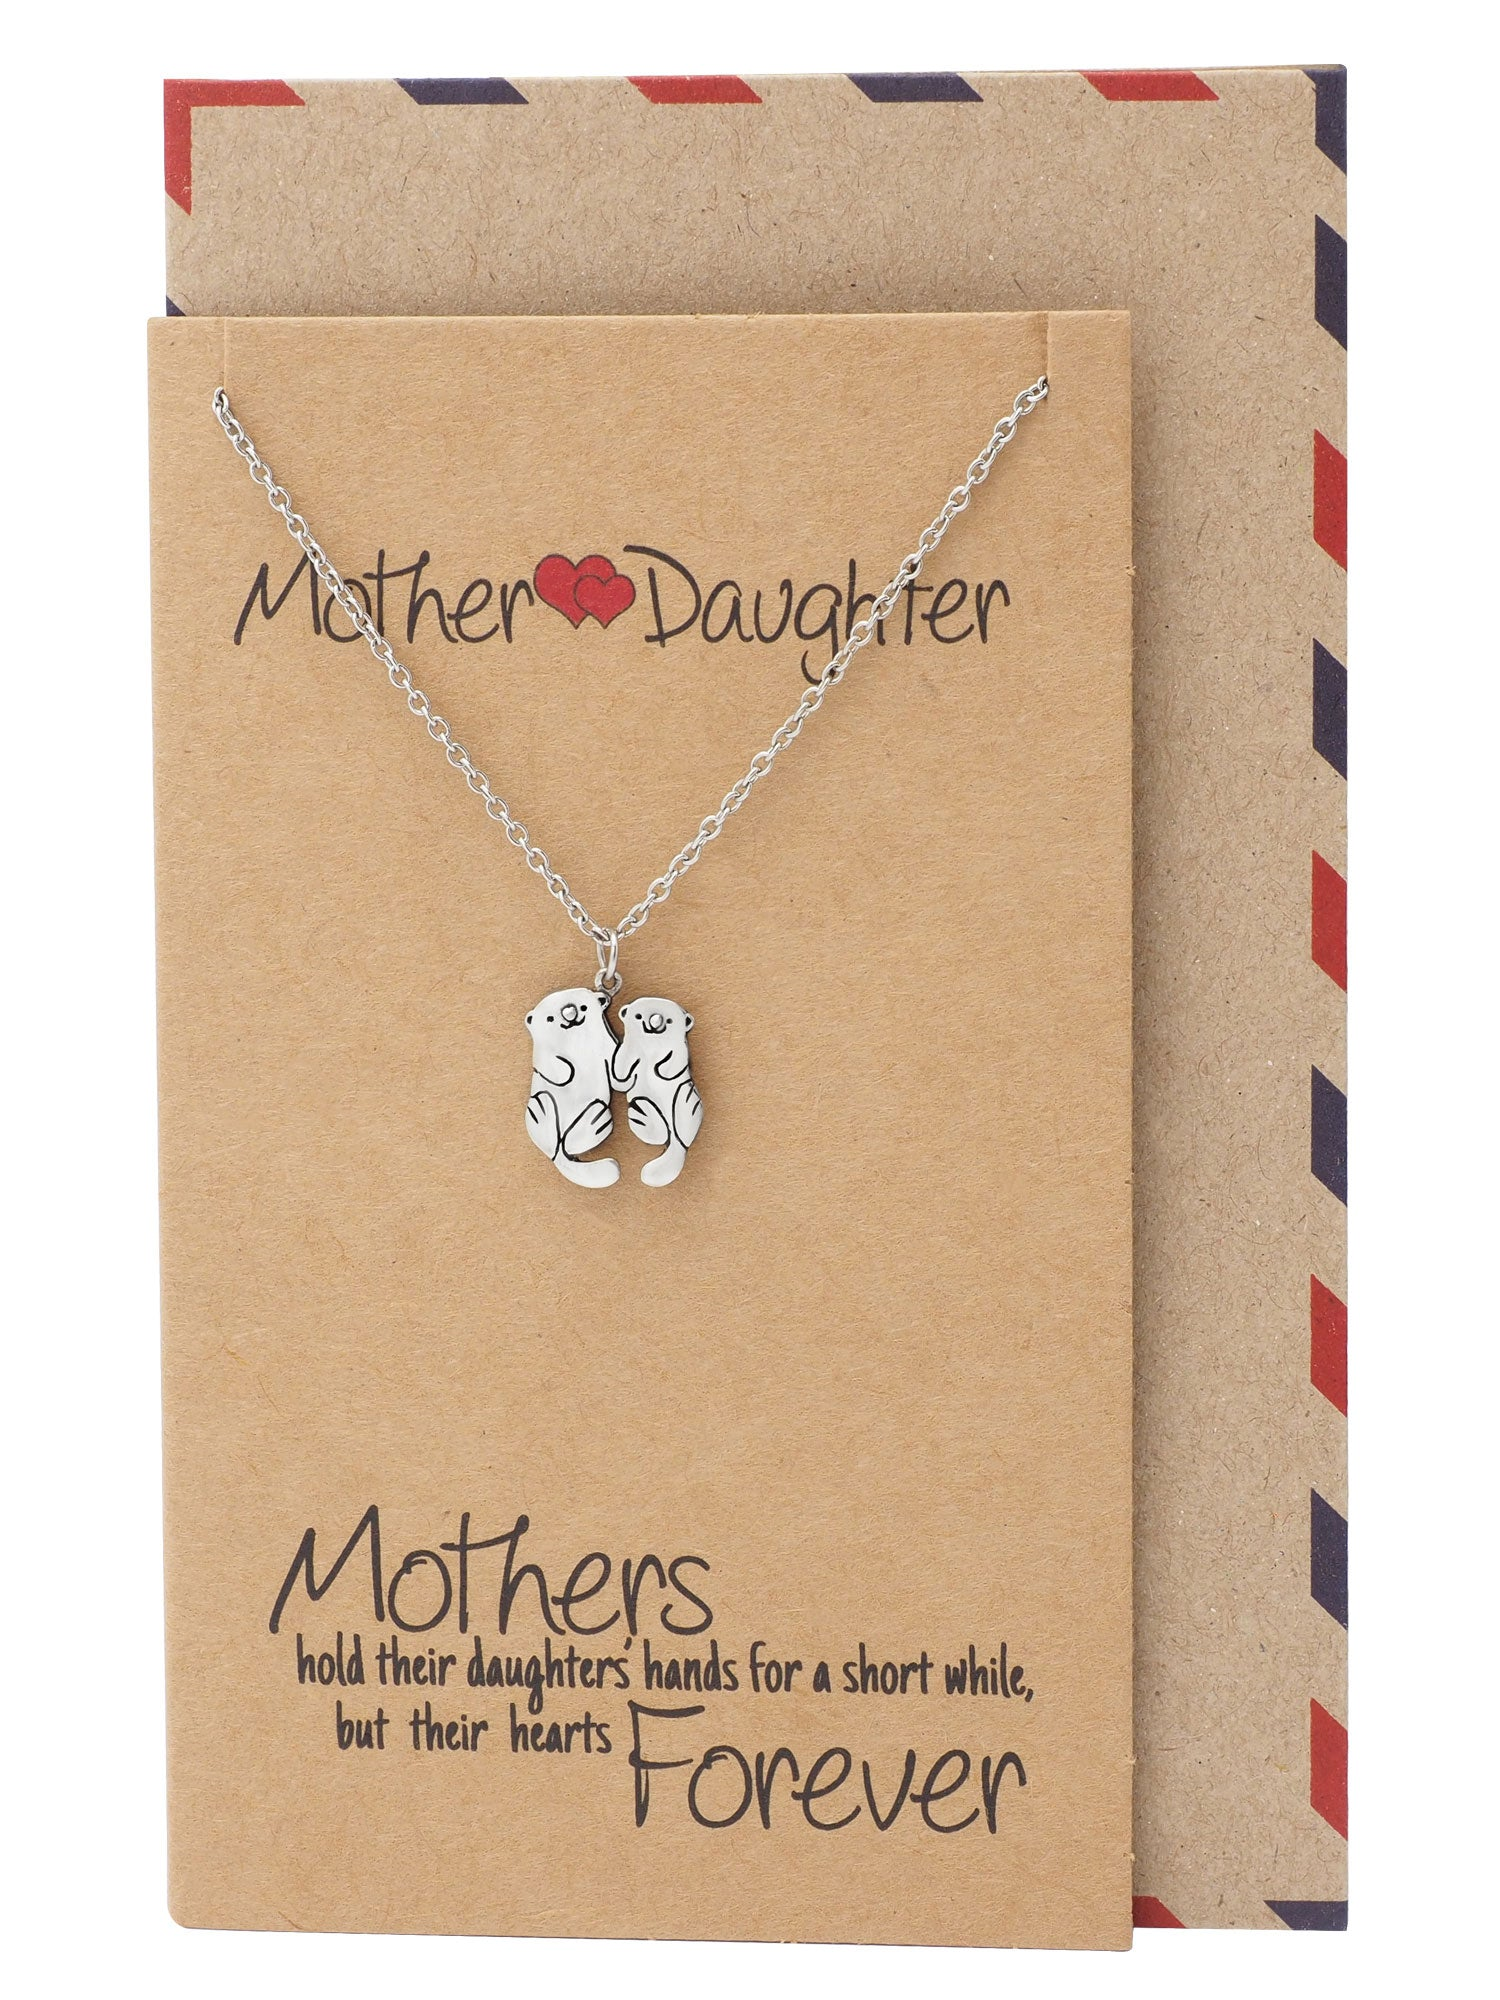 Adriana Mother and Daughter Otter Necklace with Inspirational Quote